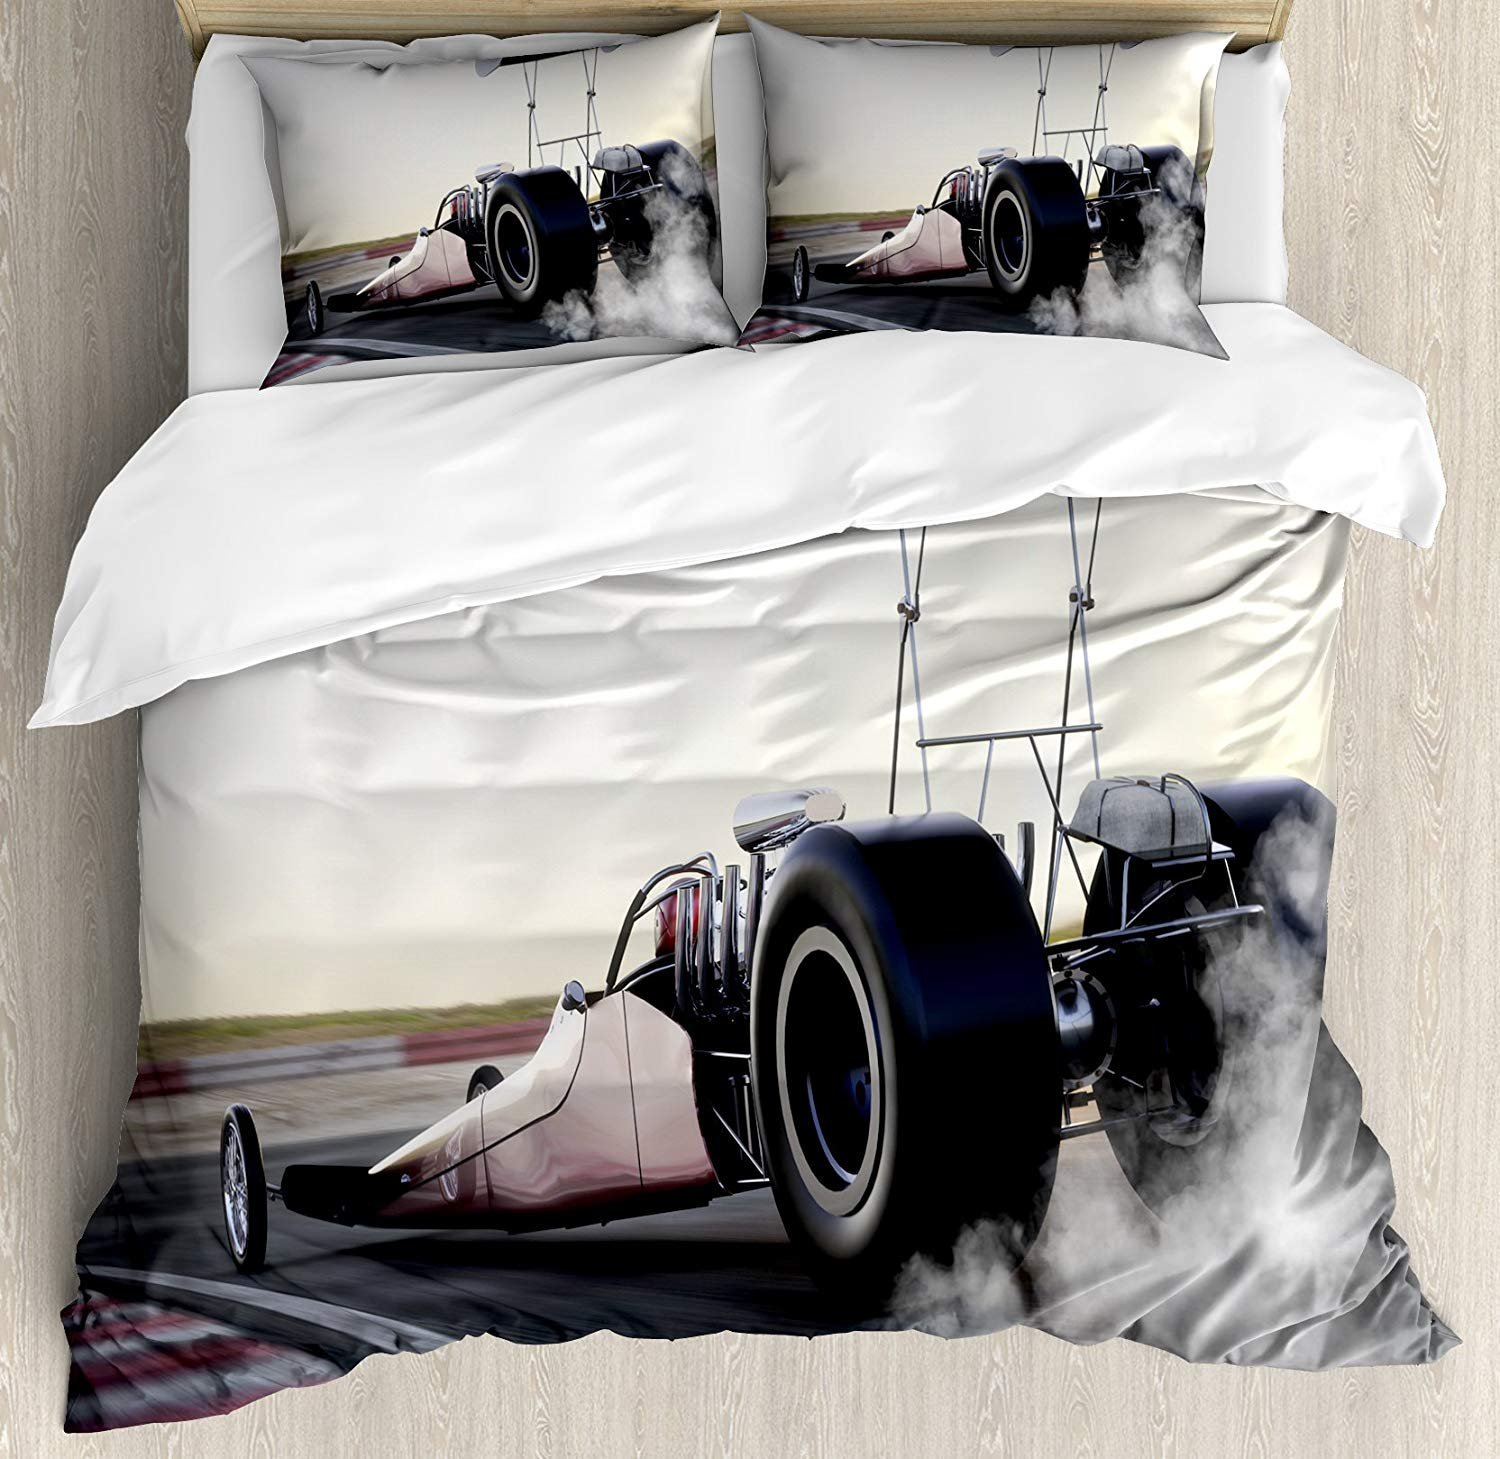 Infinidesign Cars Lightweight Microfiber Duvet Cover Set Twin Size, Dragster Racing Down The Track with Burnout Competition Speed Sports Technology, 4 Piece Bedding Set, Grey Black White